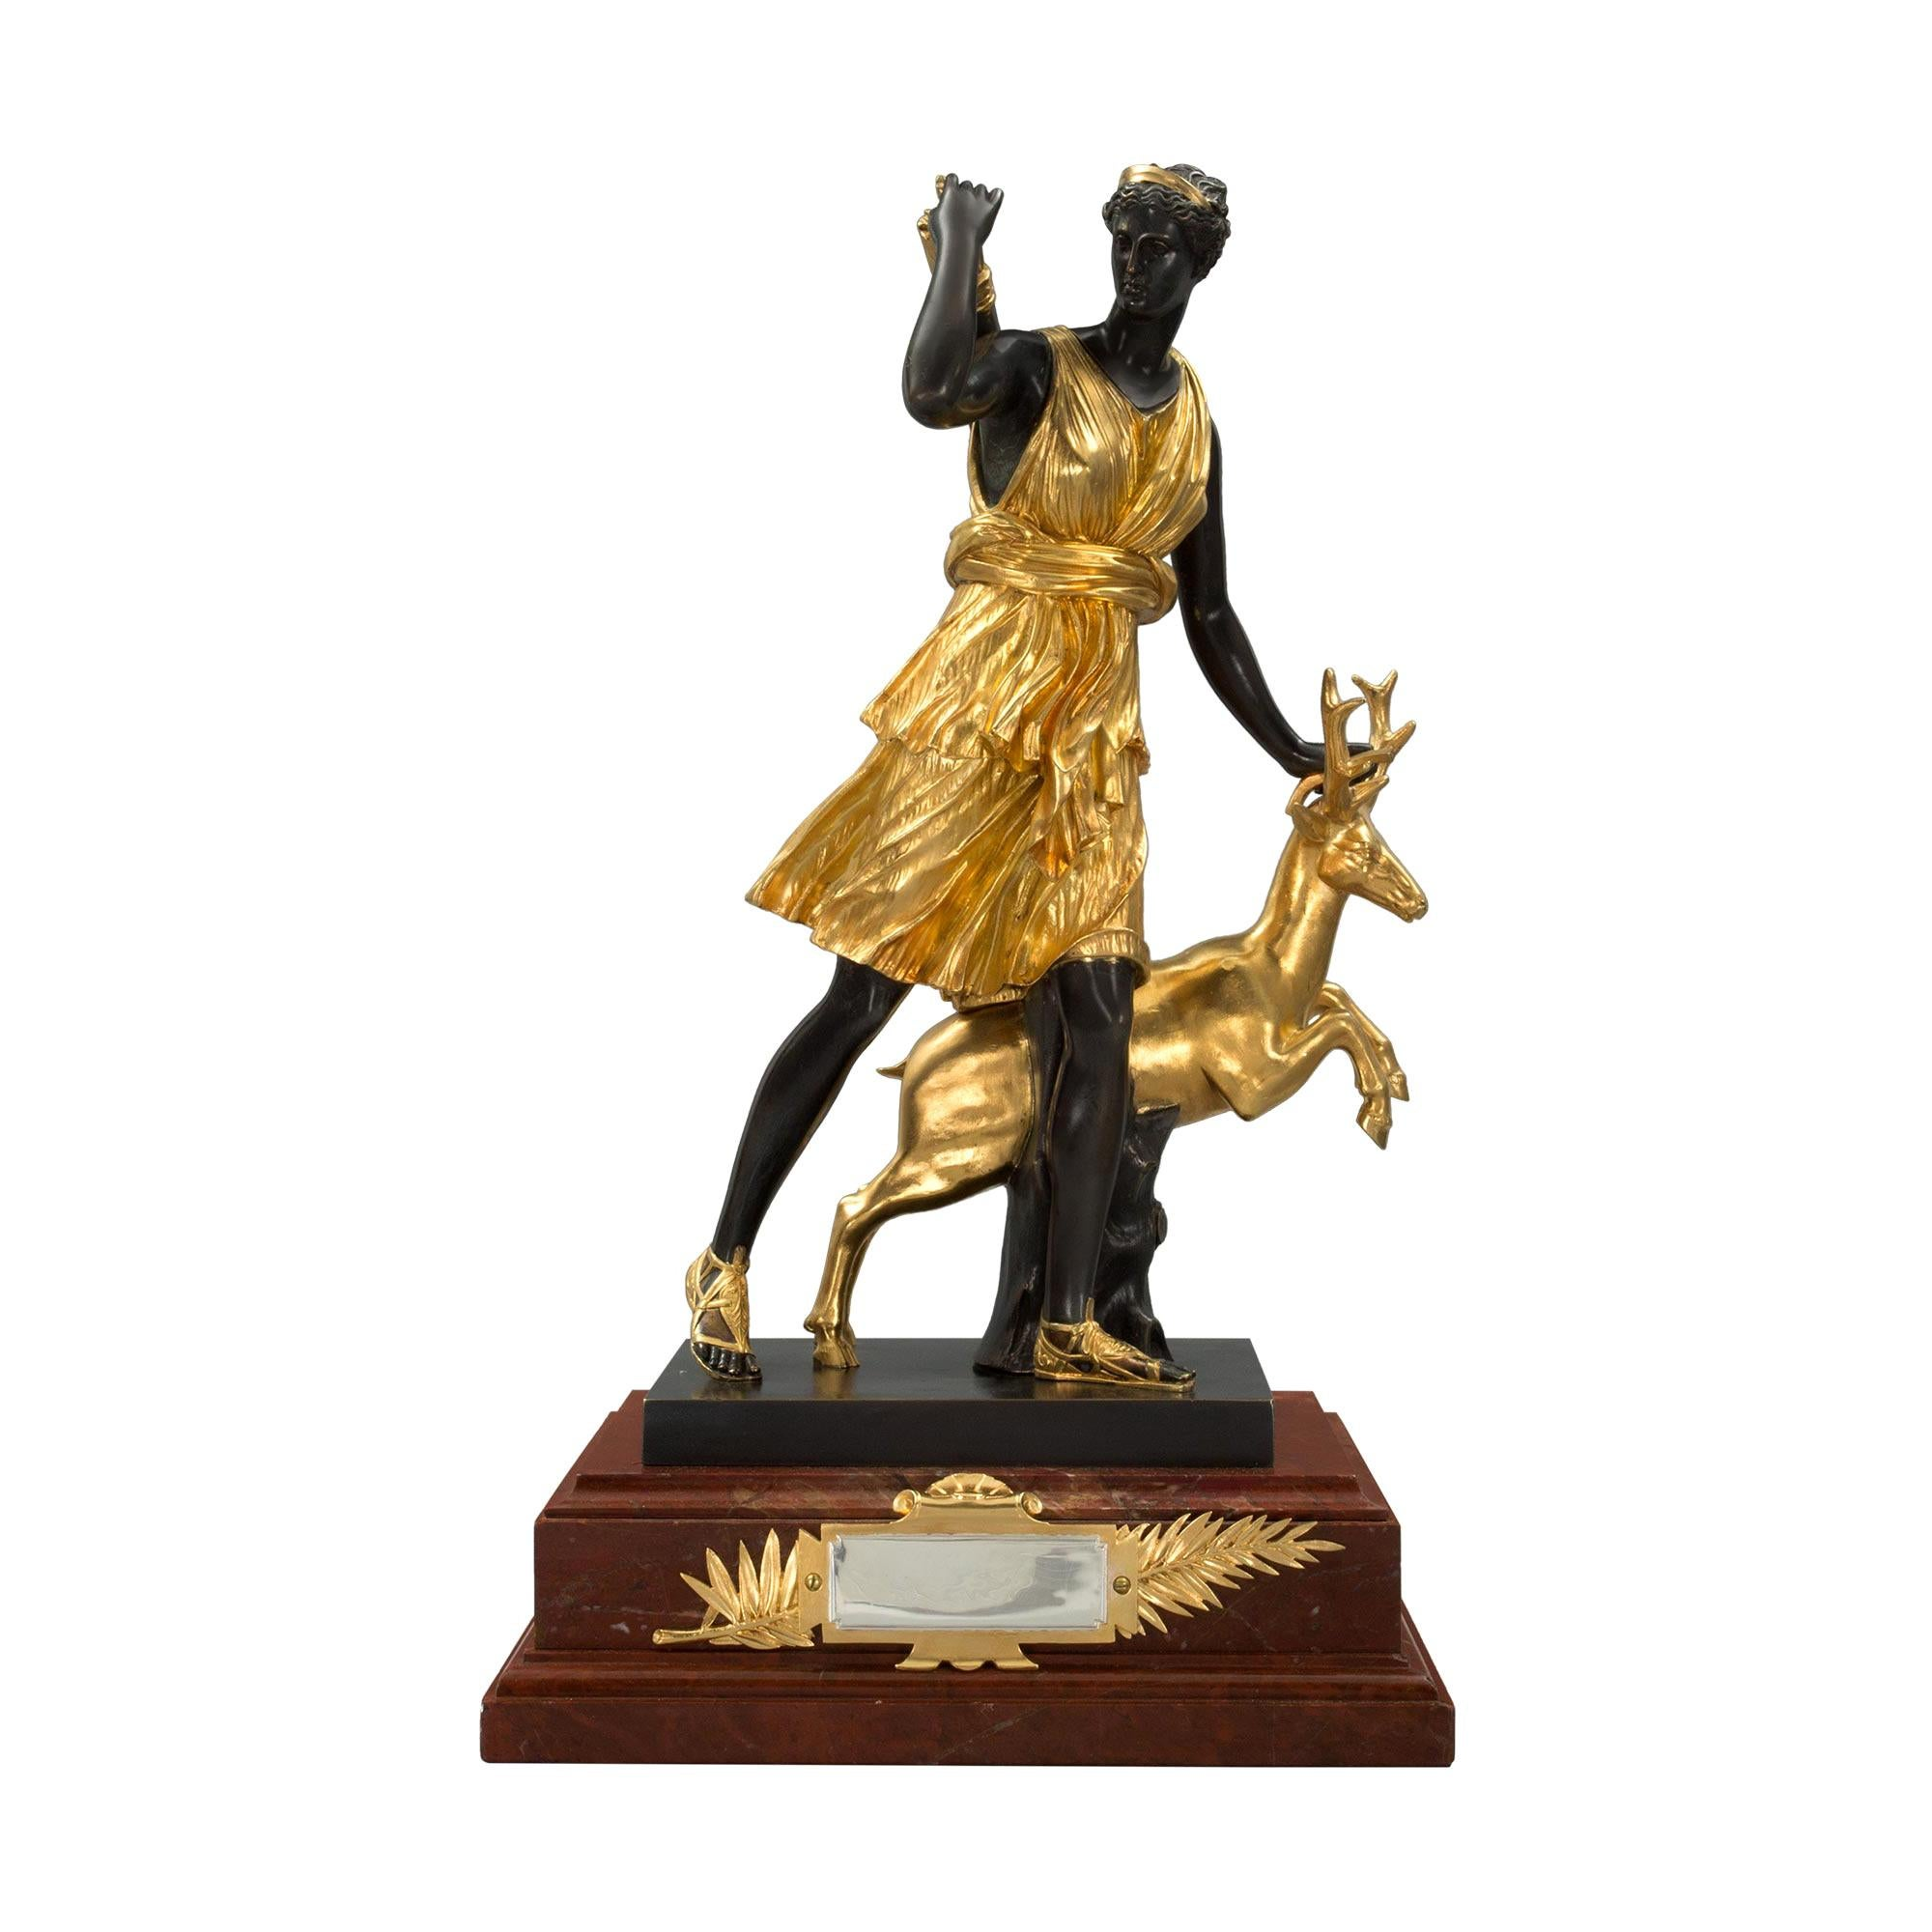 French 19th Century Louis XVI Style Ormolu, Bronze and Marble Statue